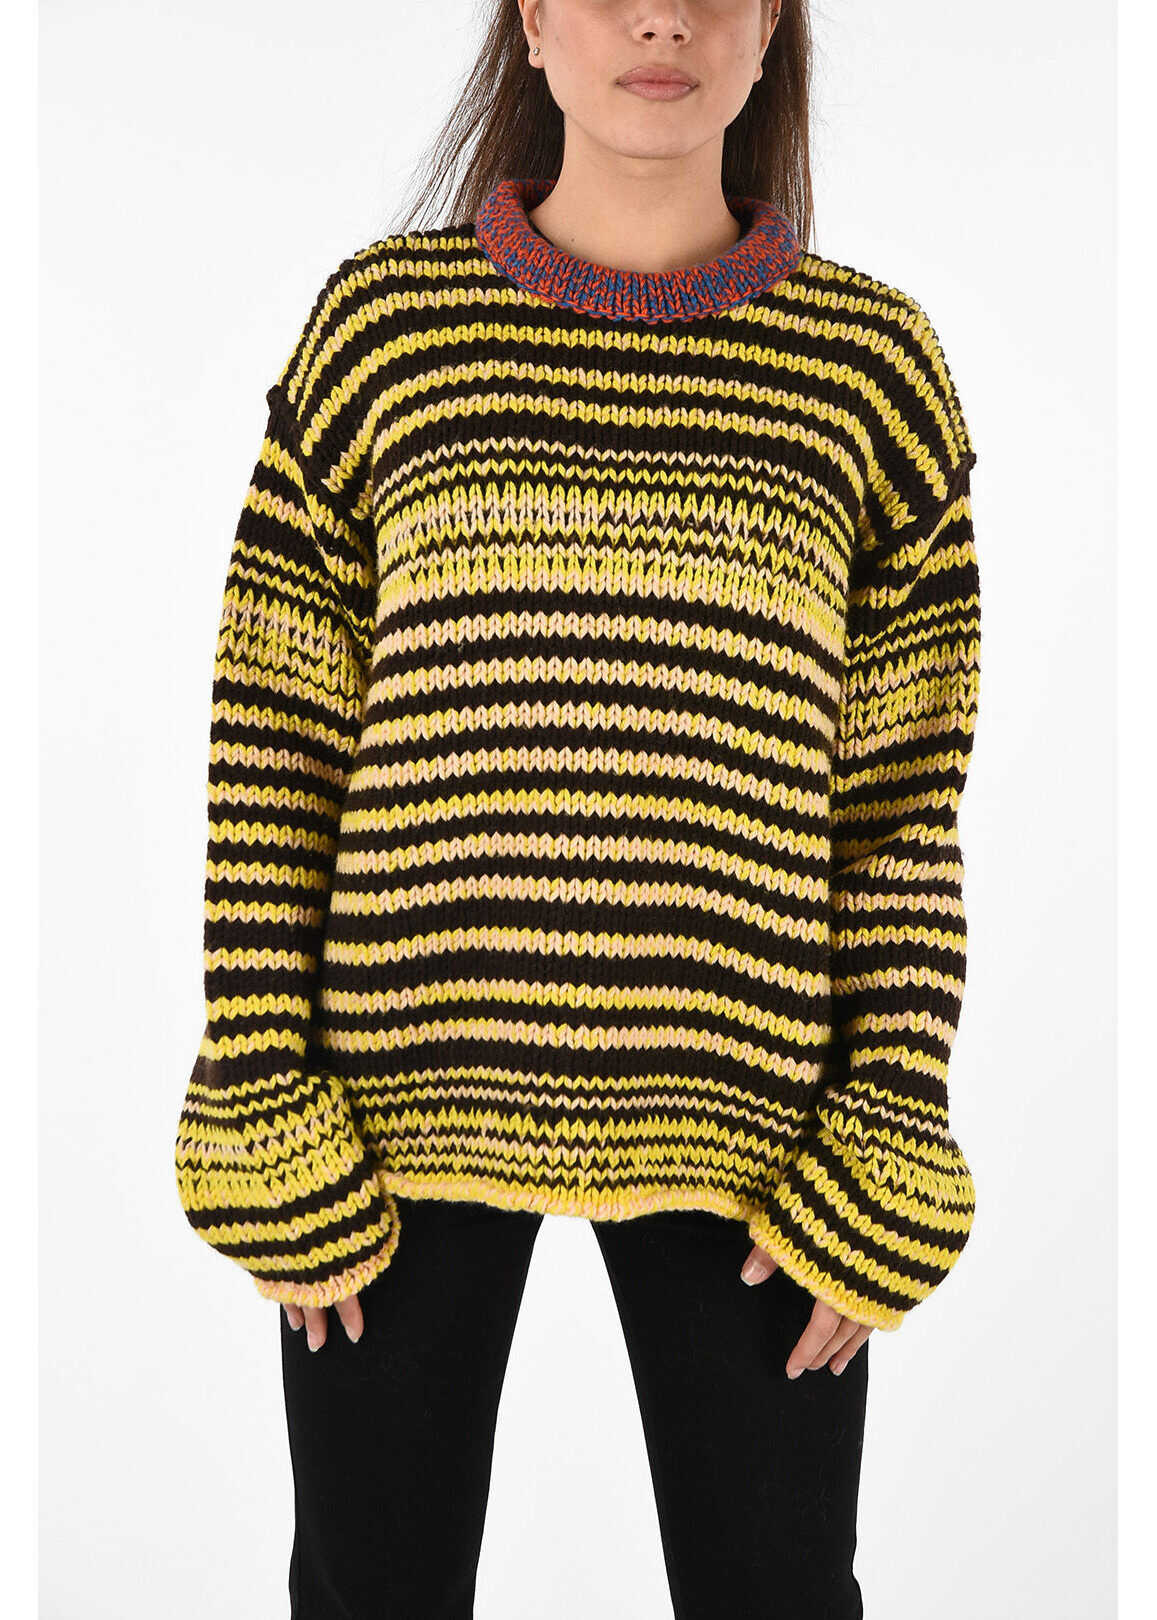 Calvin Klein 205W39NYC cable knit wool crew-neck sweater MULTICOLOR